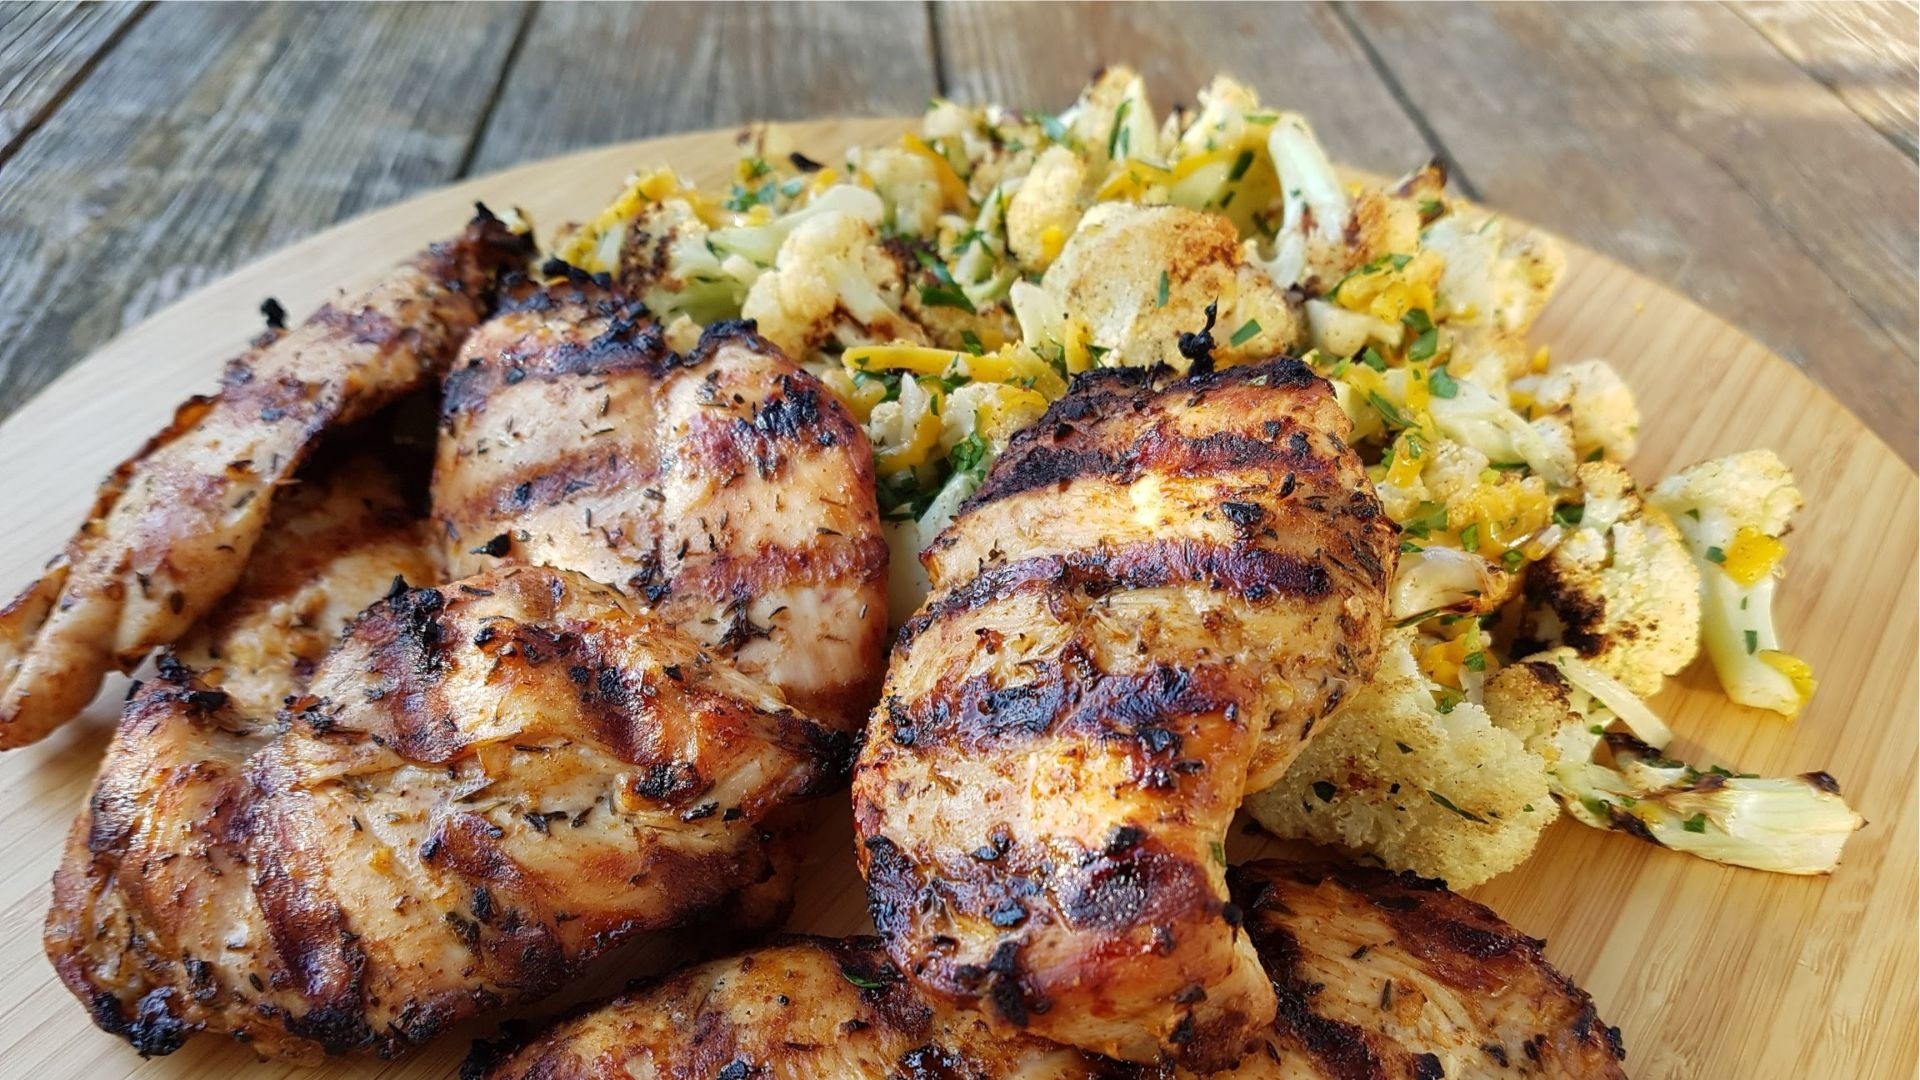 Grilled chicken breasts and cauliflower on wooden board